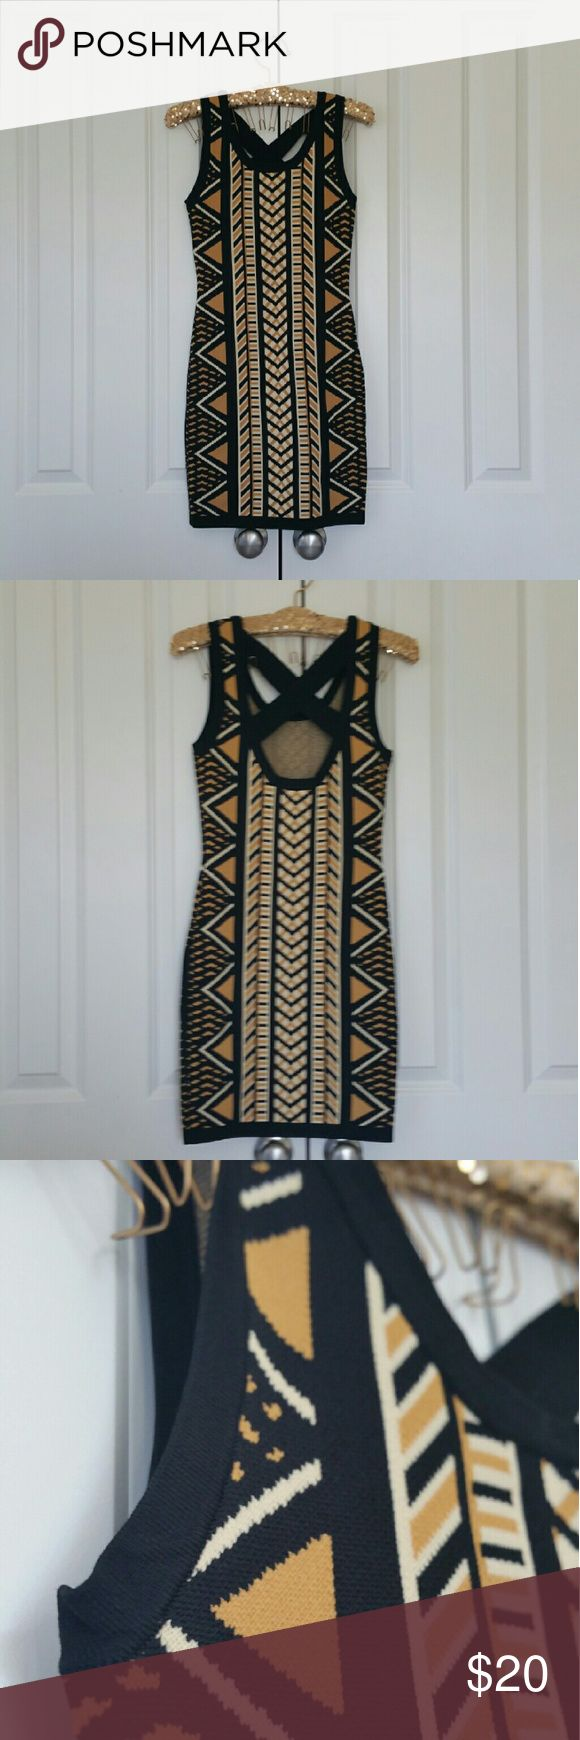 """▪Black, Cream, Camel Body Con Cross Back Dress▪ Brand new with tags...  Size is Small...  50% rayon, 50% viscosa...  Measures 14"""" across the bust, 32"""" length from the shoulder down...  Really stretchy...  If you have any questions please ask... If you don't like the price please use the offer button... Sorry no trades...  """"Great Sense of Style"""" Have an amazing day! Forever 21 Dresses Mini"""